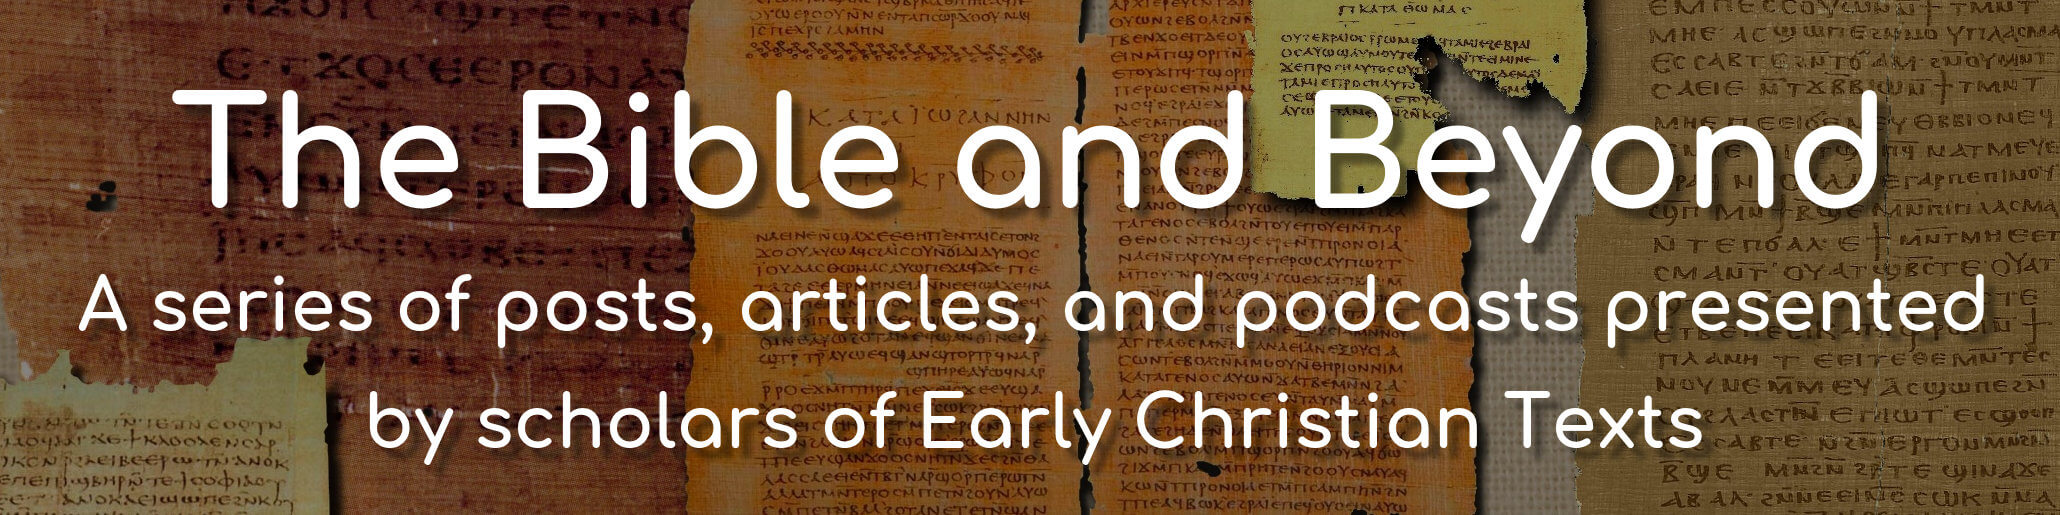 The title image for Early Christian Texts Bible and Beyond.